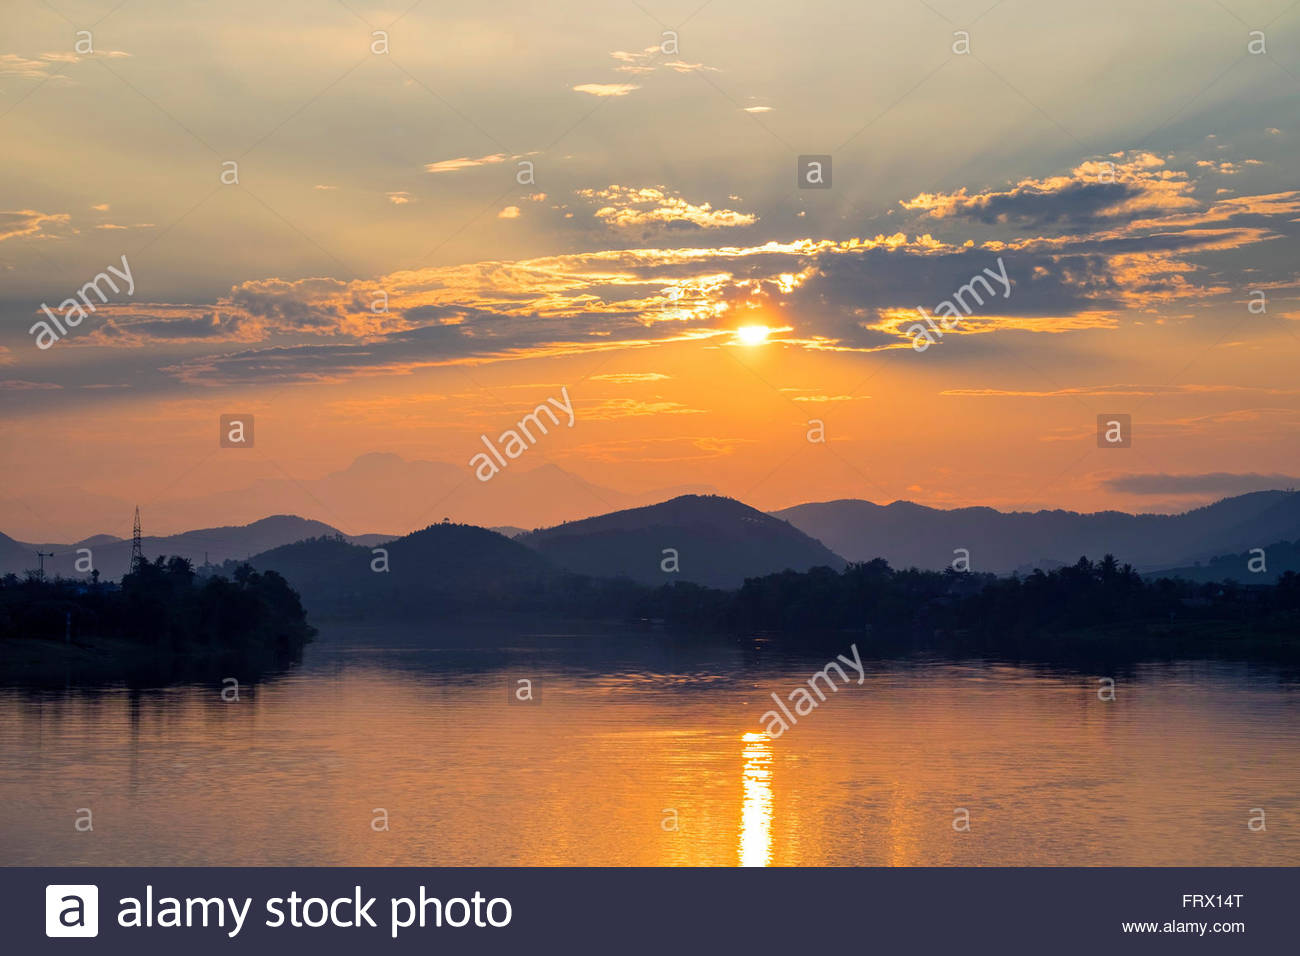 Sunset over the Perfume River, Hue, Thua Thien-Hue Province, Vietnam - Stock Image